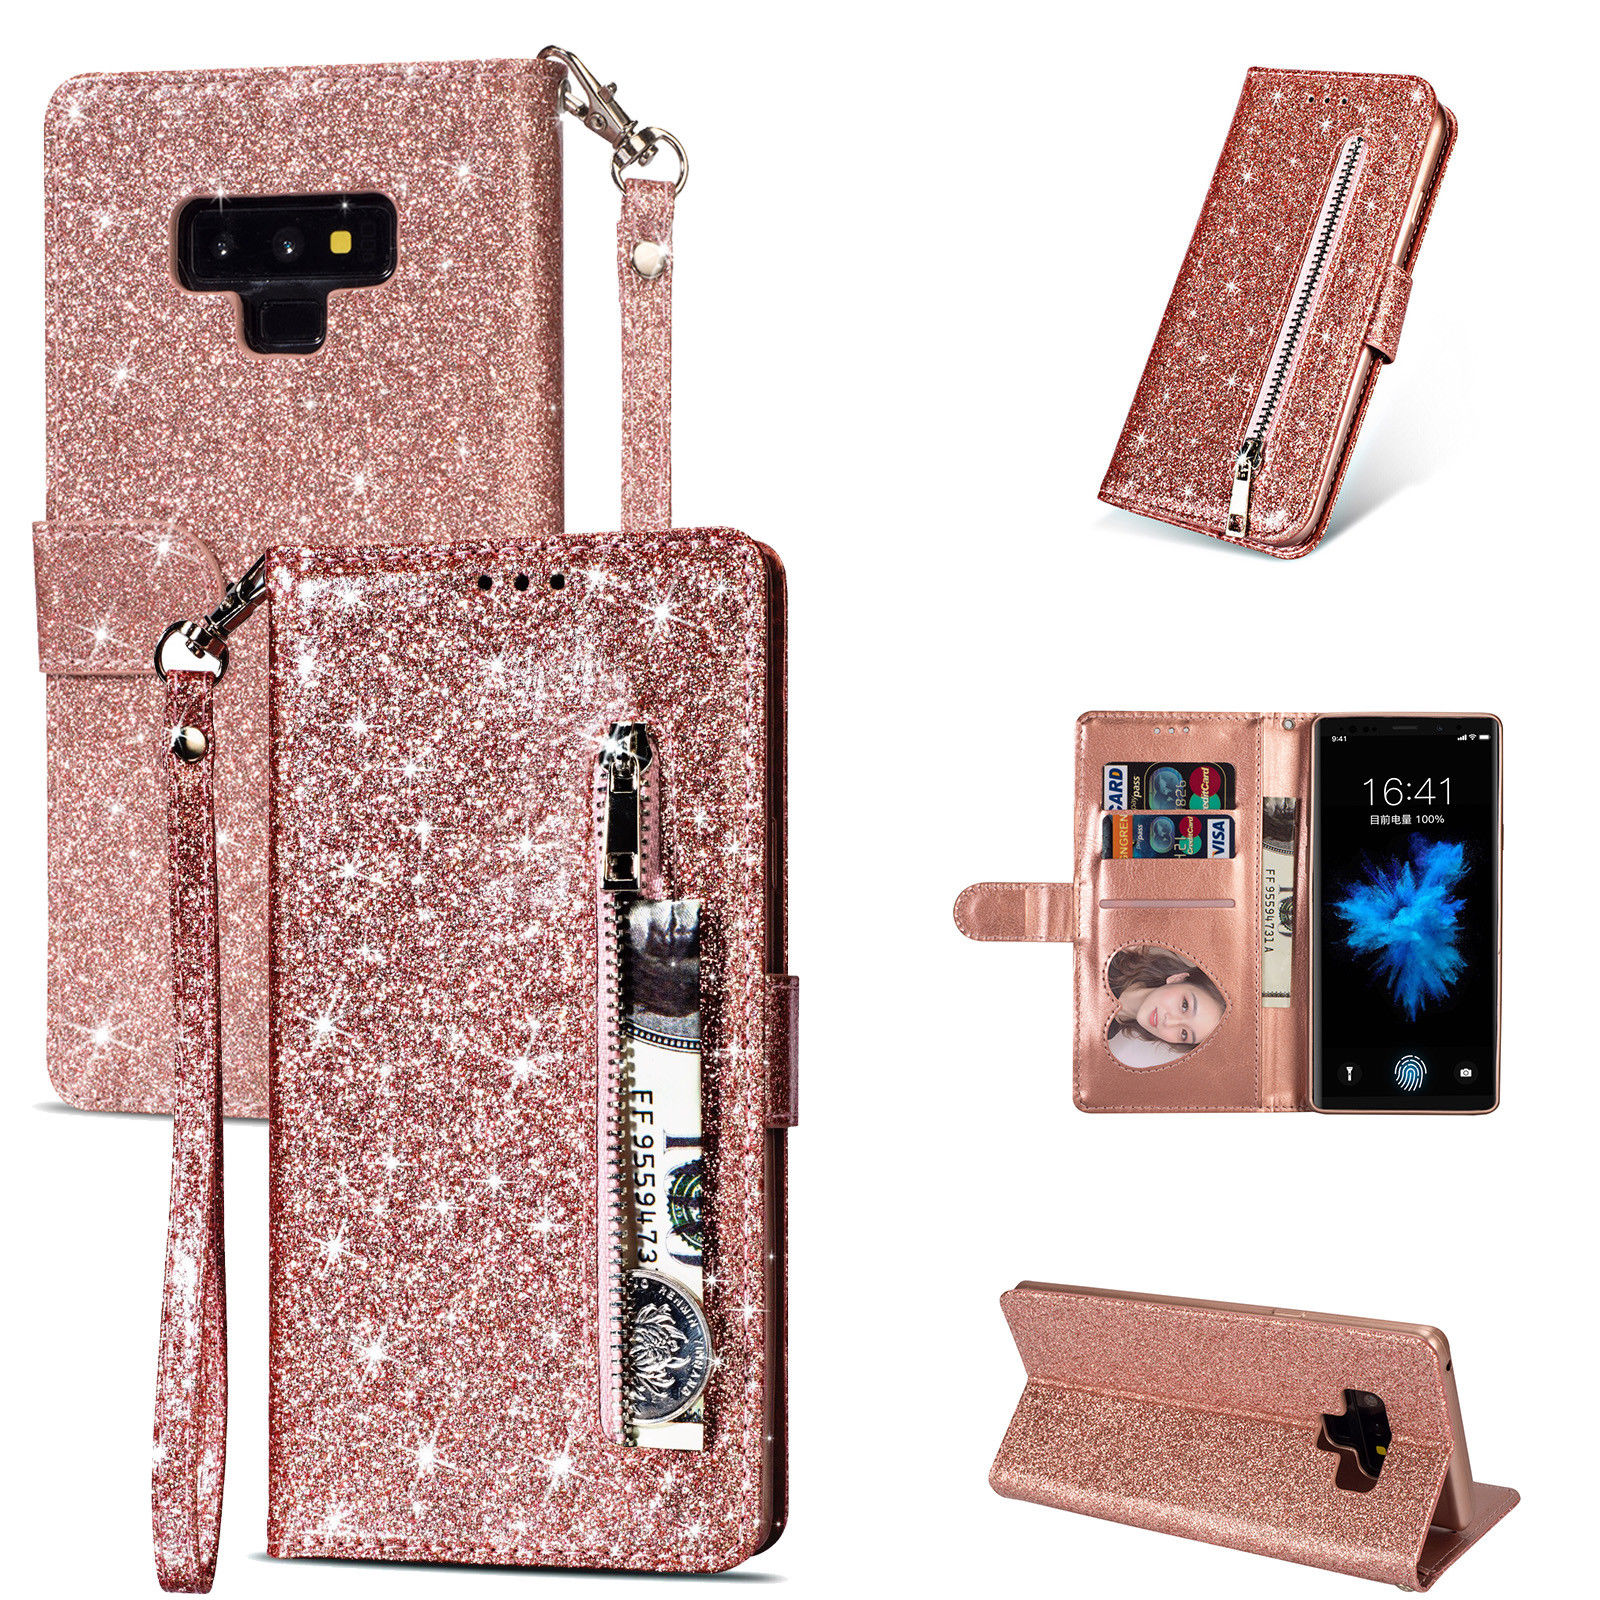 HTB13wvEdgaH3KVjSZFjq6AFWpXa7 Bling Glitter Case For Samsung Galaxy S10e Note 8 9 S10 Plus S9 S8 Plus S7 Edge S6 Leather Flip Stand Zipper Wallet Cover Coque